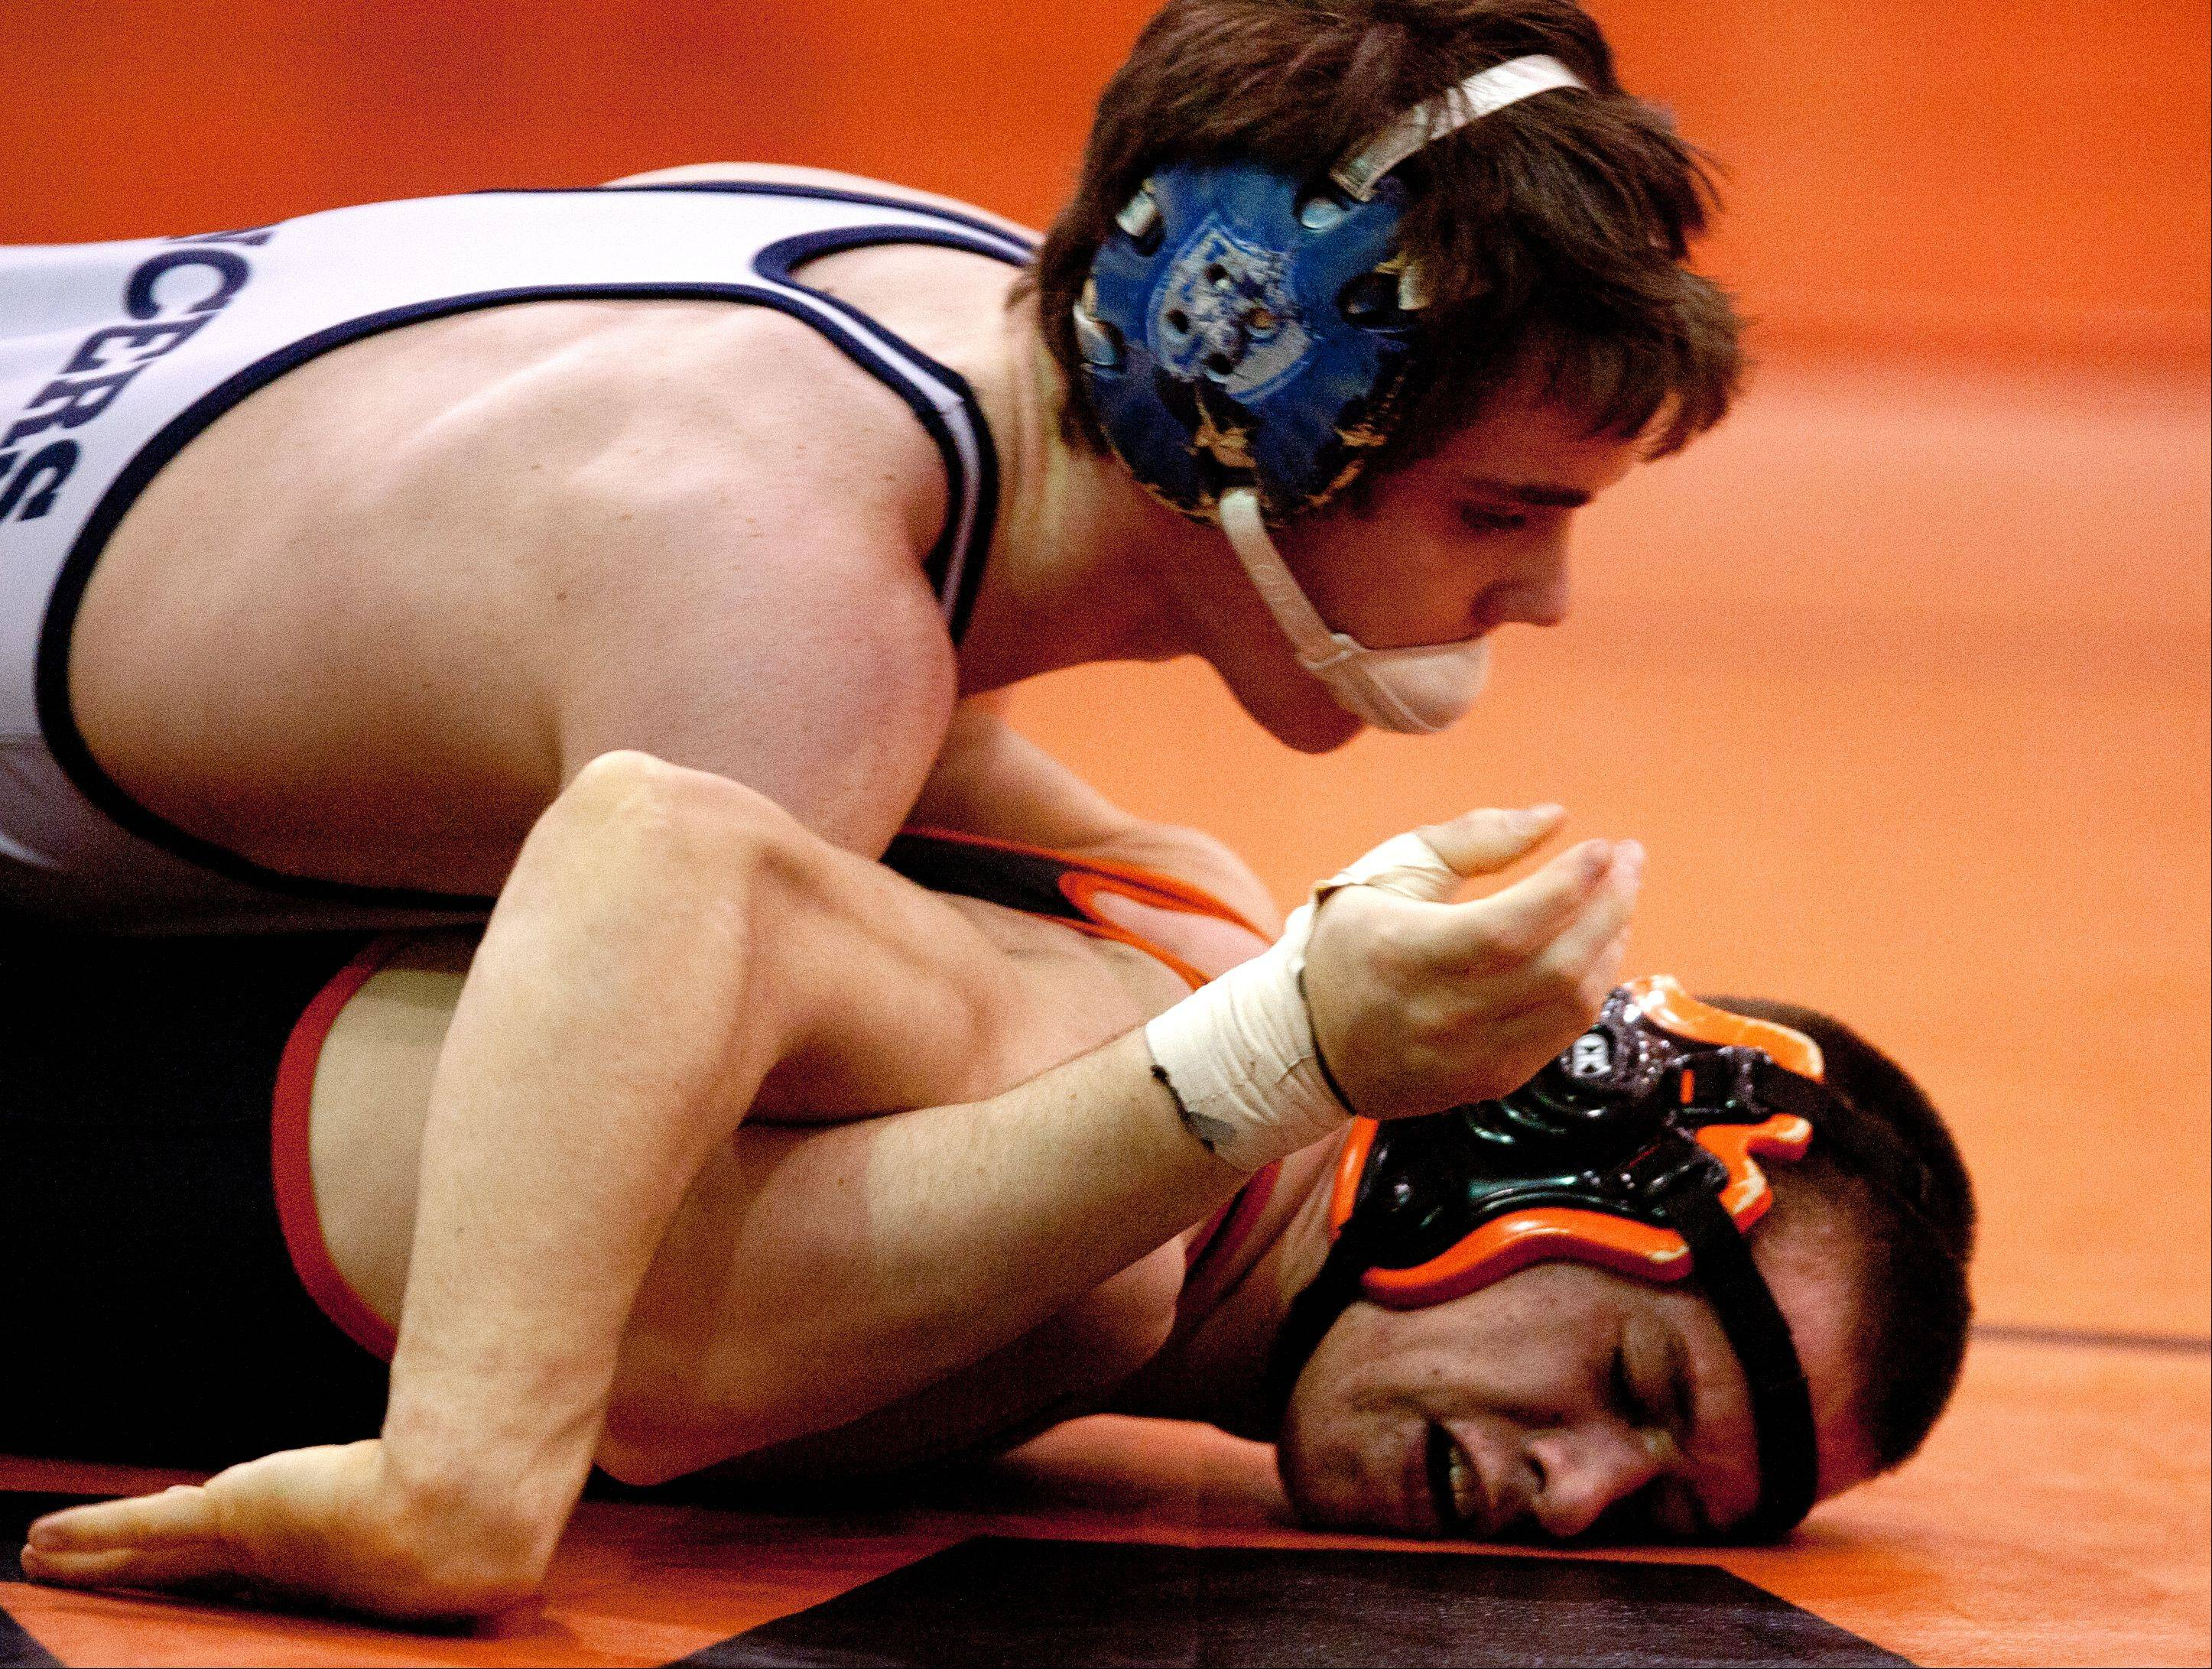 Lake Park's Austin Schoen, top, wins by decision over Wheaton Warrenville South's Andrew Ives at the 145 weight, during the Wheaton Warrenville South wrestling quad.